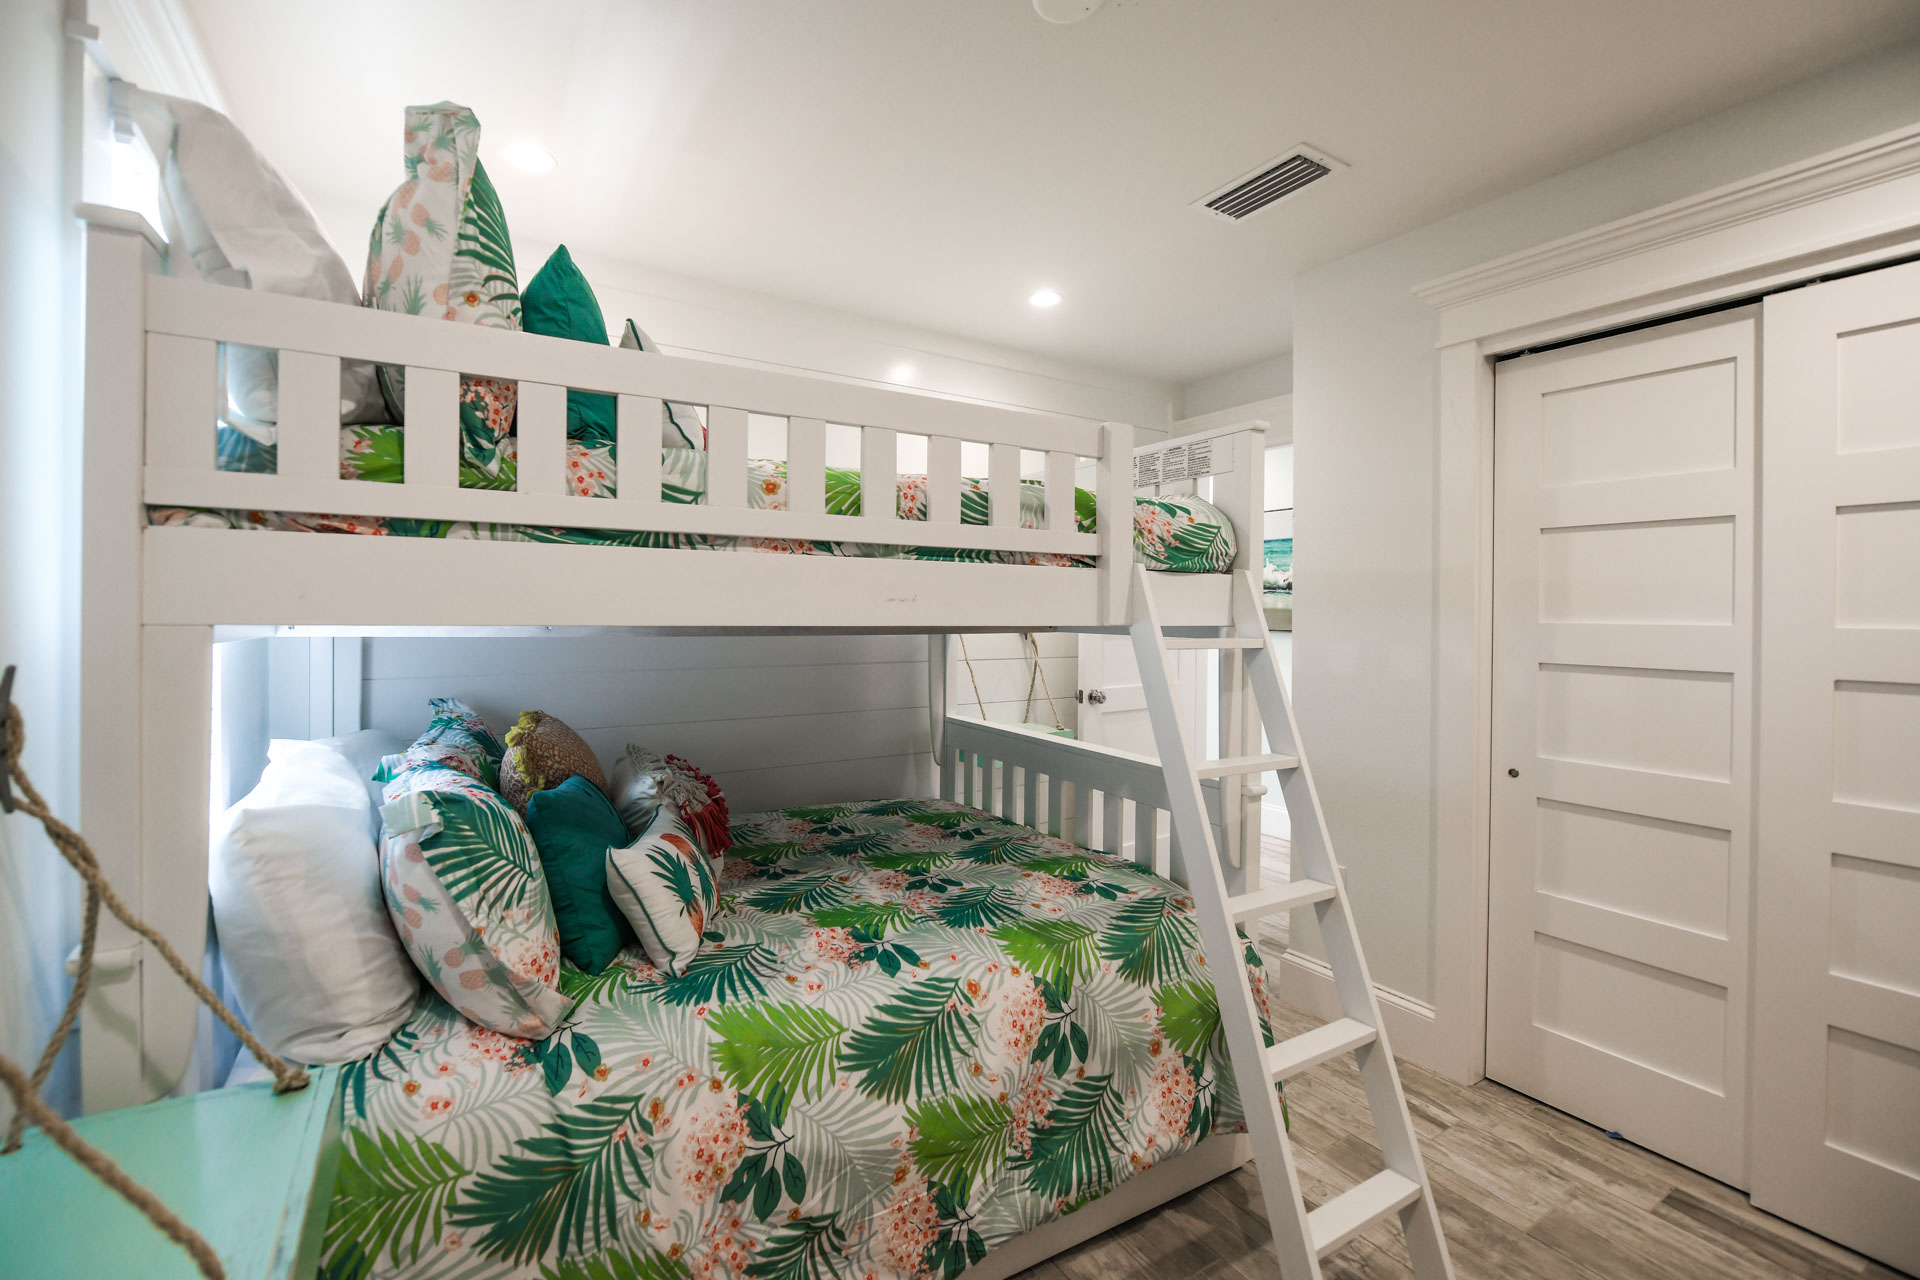 Bunk Room- Hawaiian Inspired decor with plenty of storage